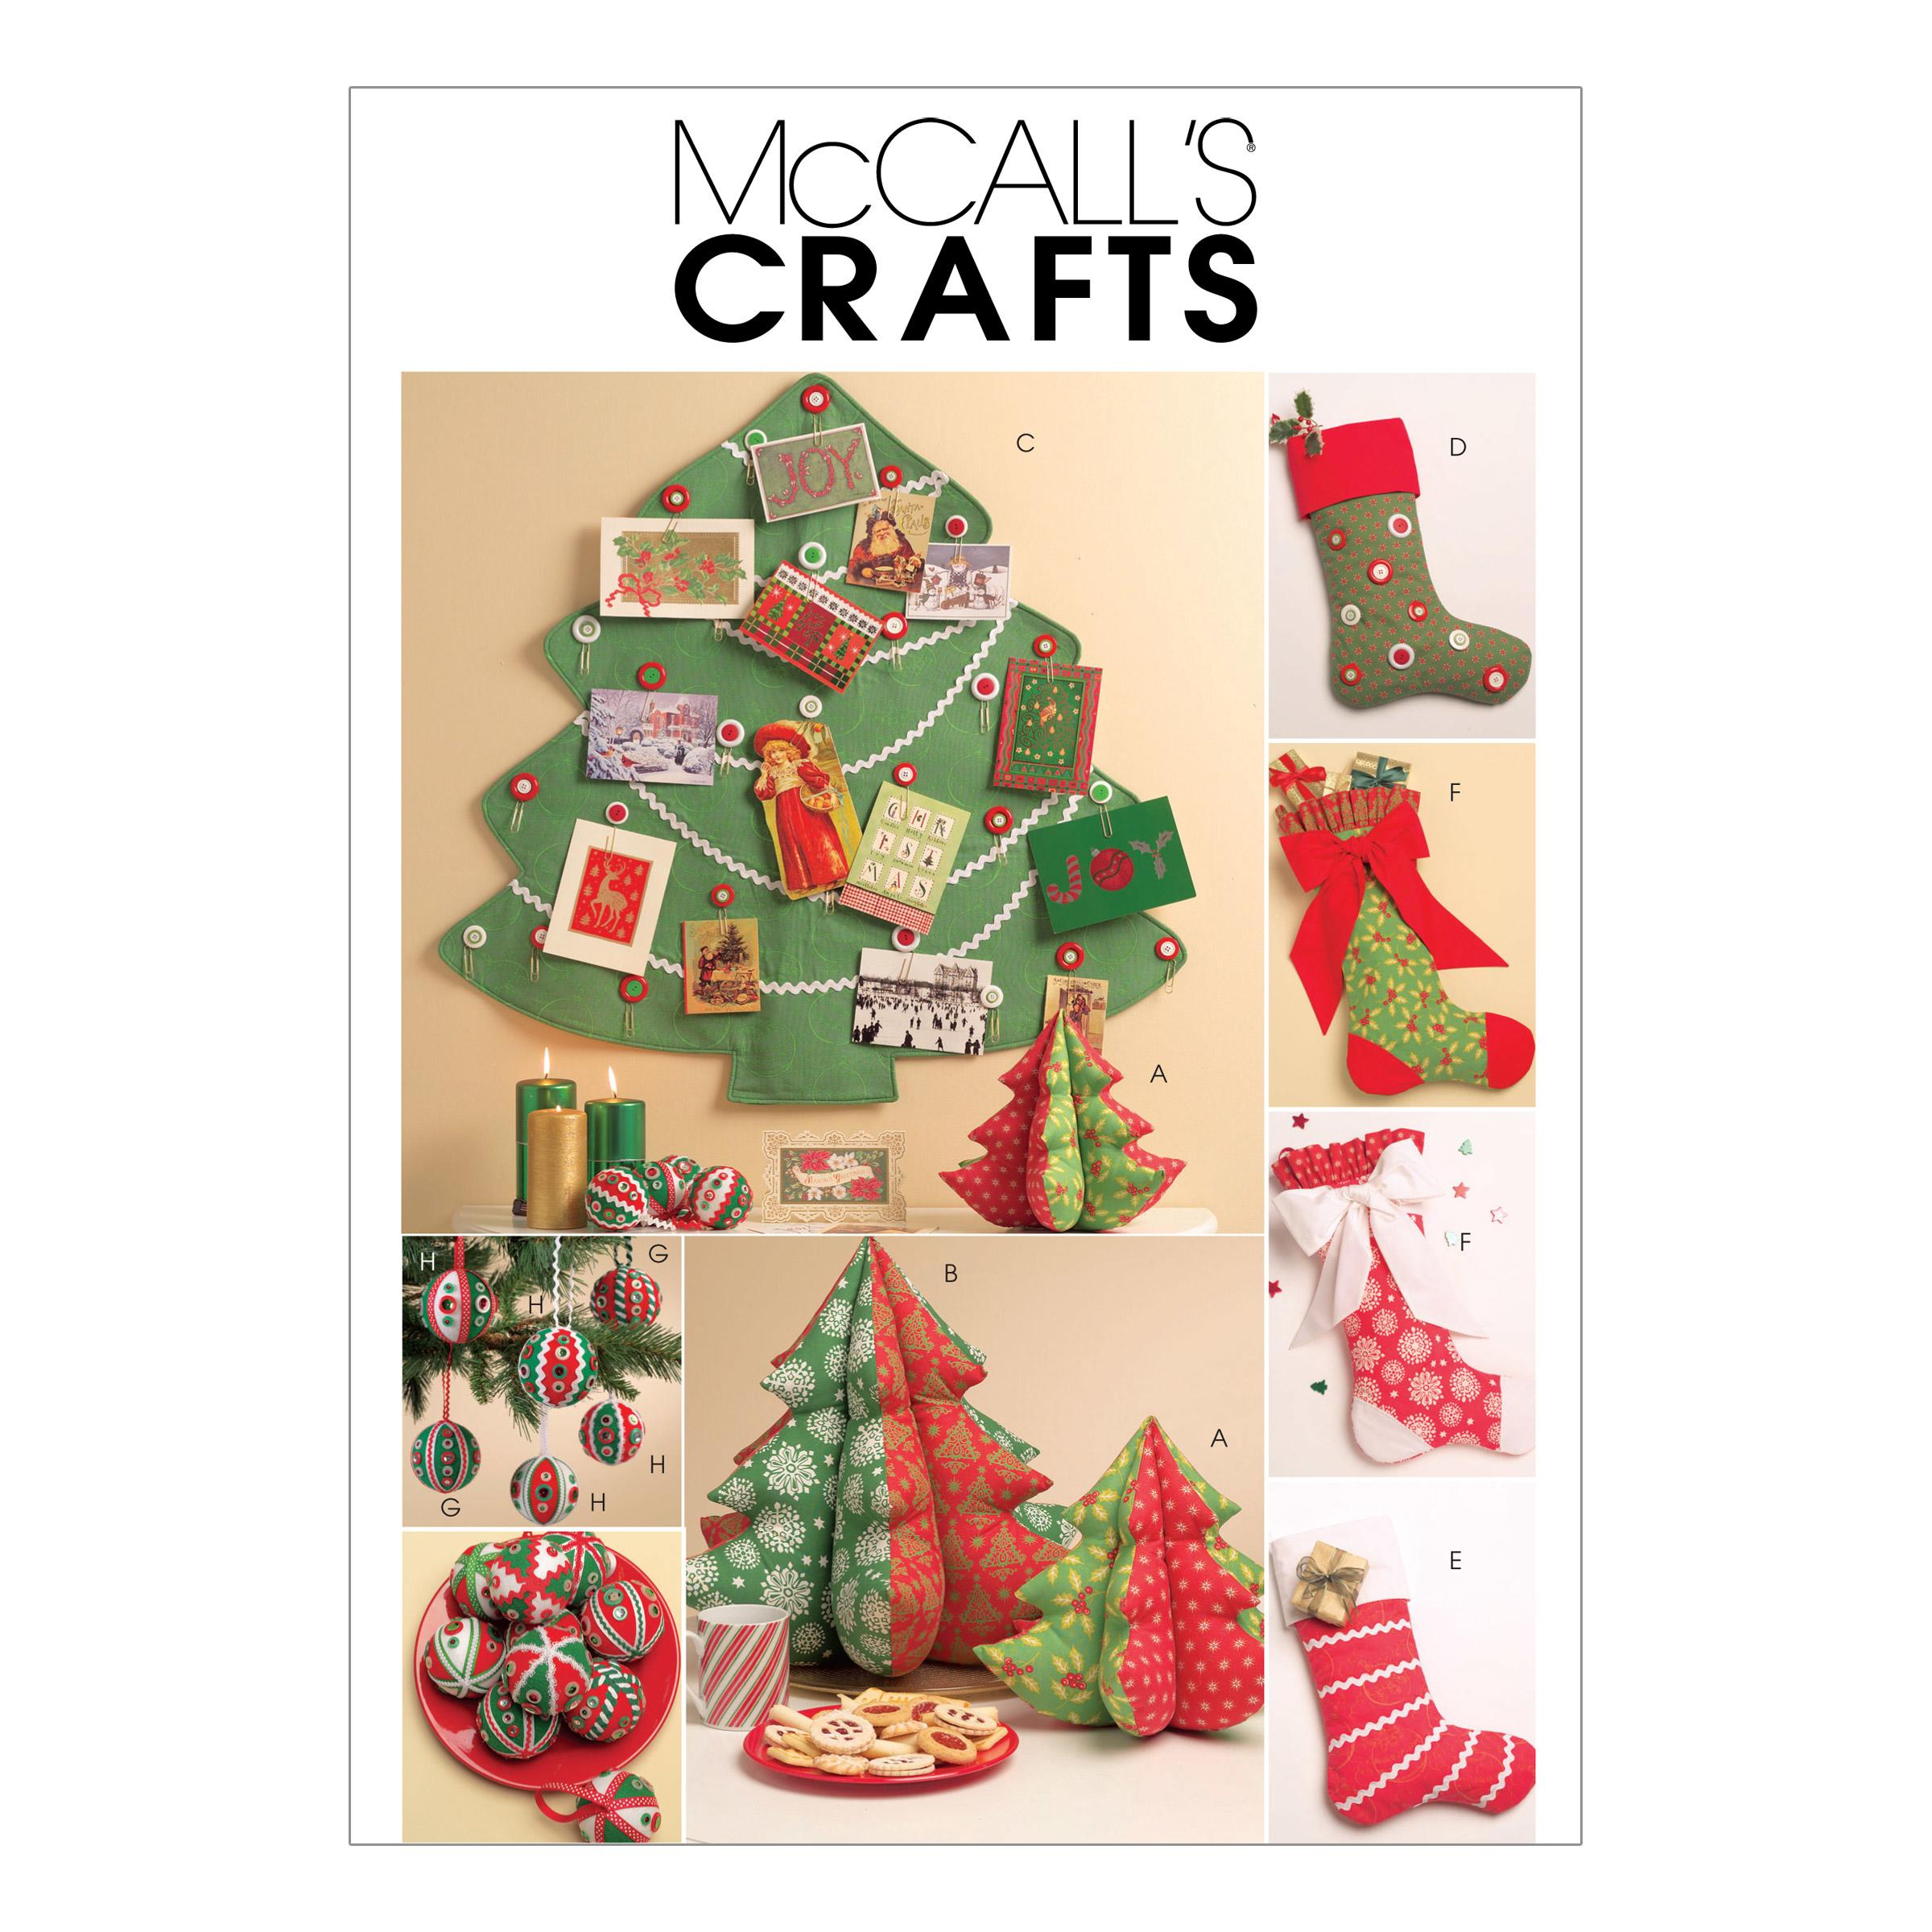 McCalls M5778 Crafts/Dolls/Pets, Seasonal/Holiday